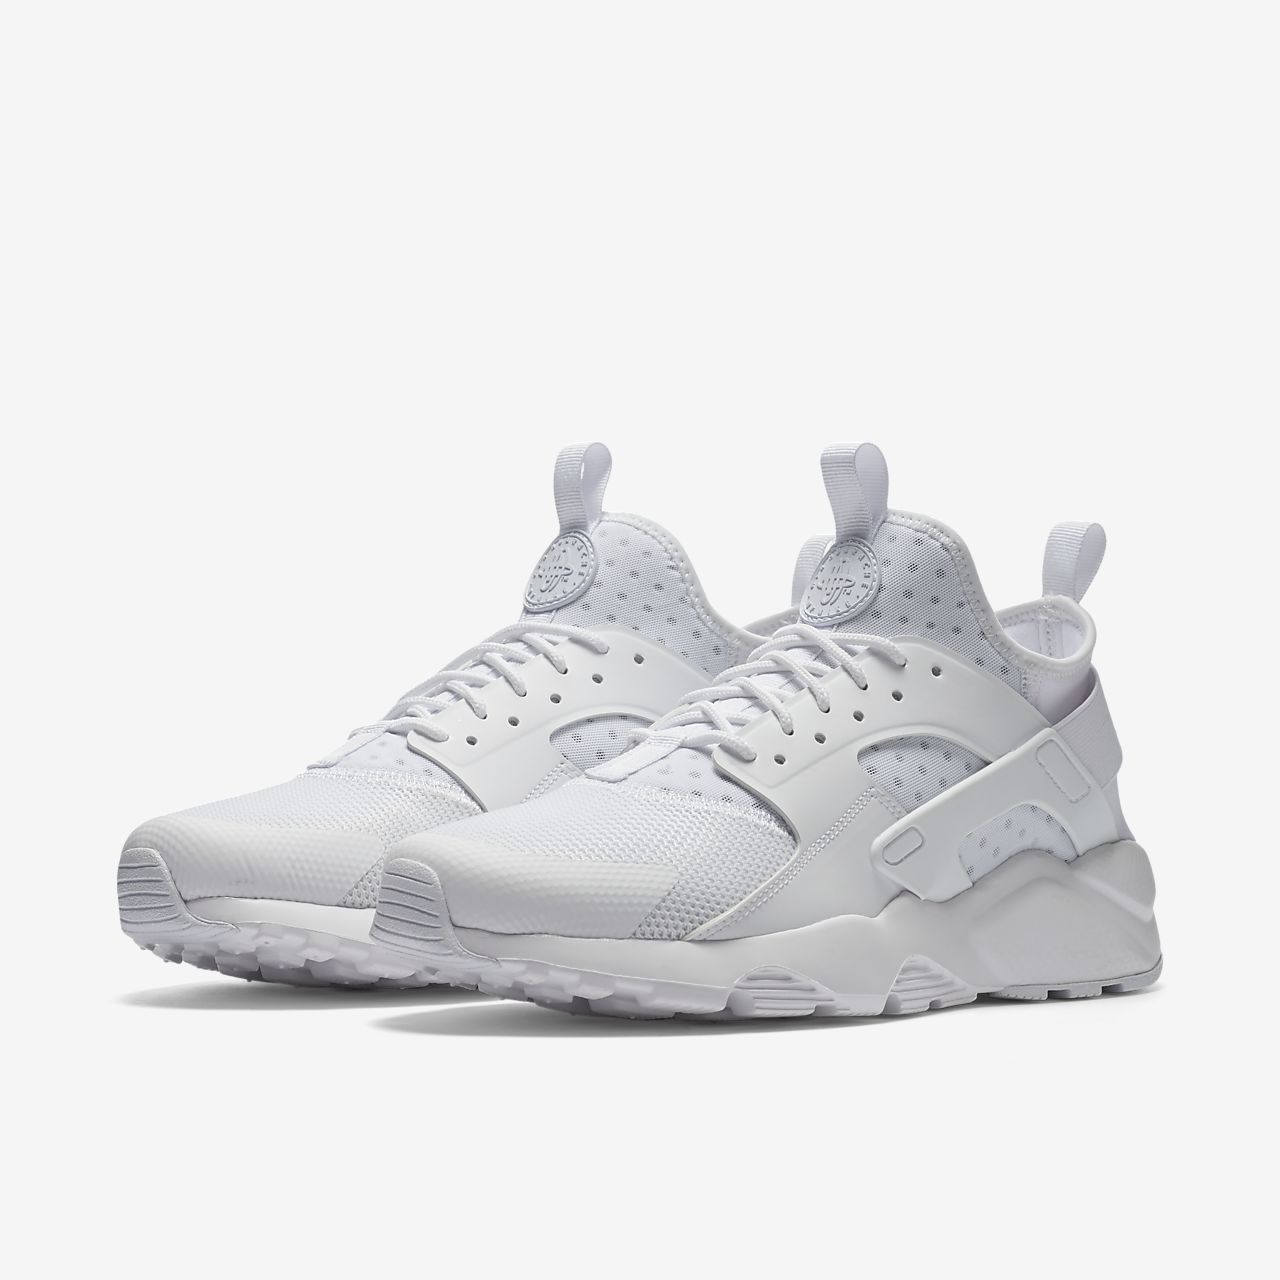 Acquista 2 OFF QUALSIASI nike air huarache economico CASE E OTTIENI ... eb93550502e